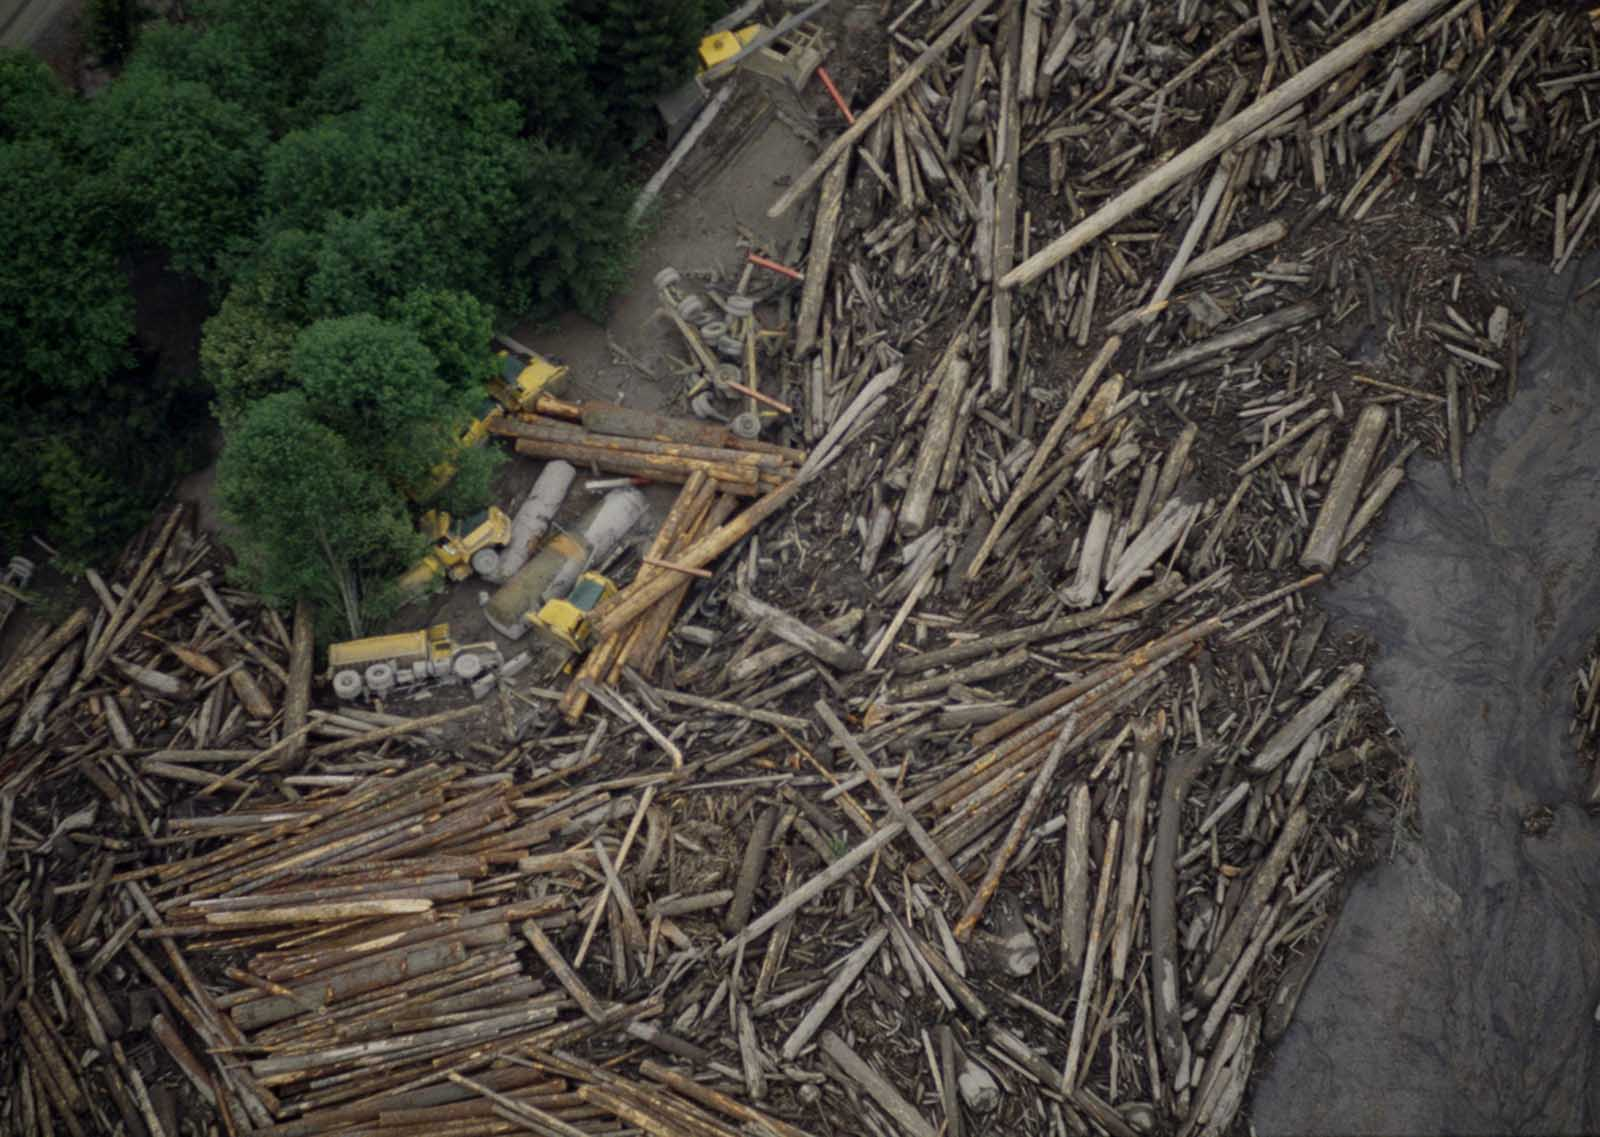 A logging operation along the Toutle River, Washington, about 20 miles from Mount St. Helens, in ruins after flooding from ice and snow melt from the mountain, in May of 1980.